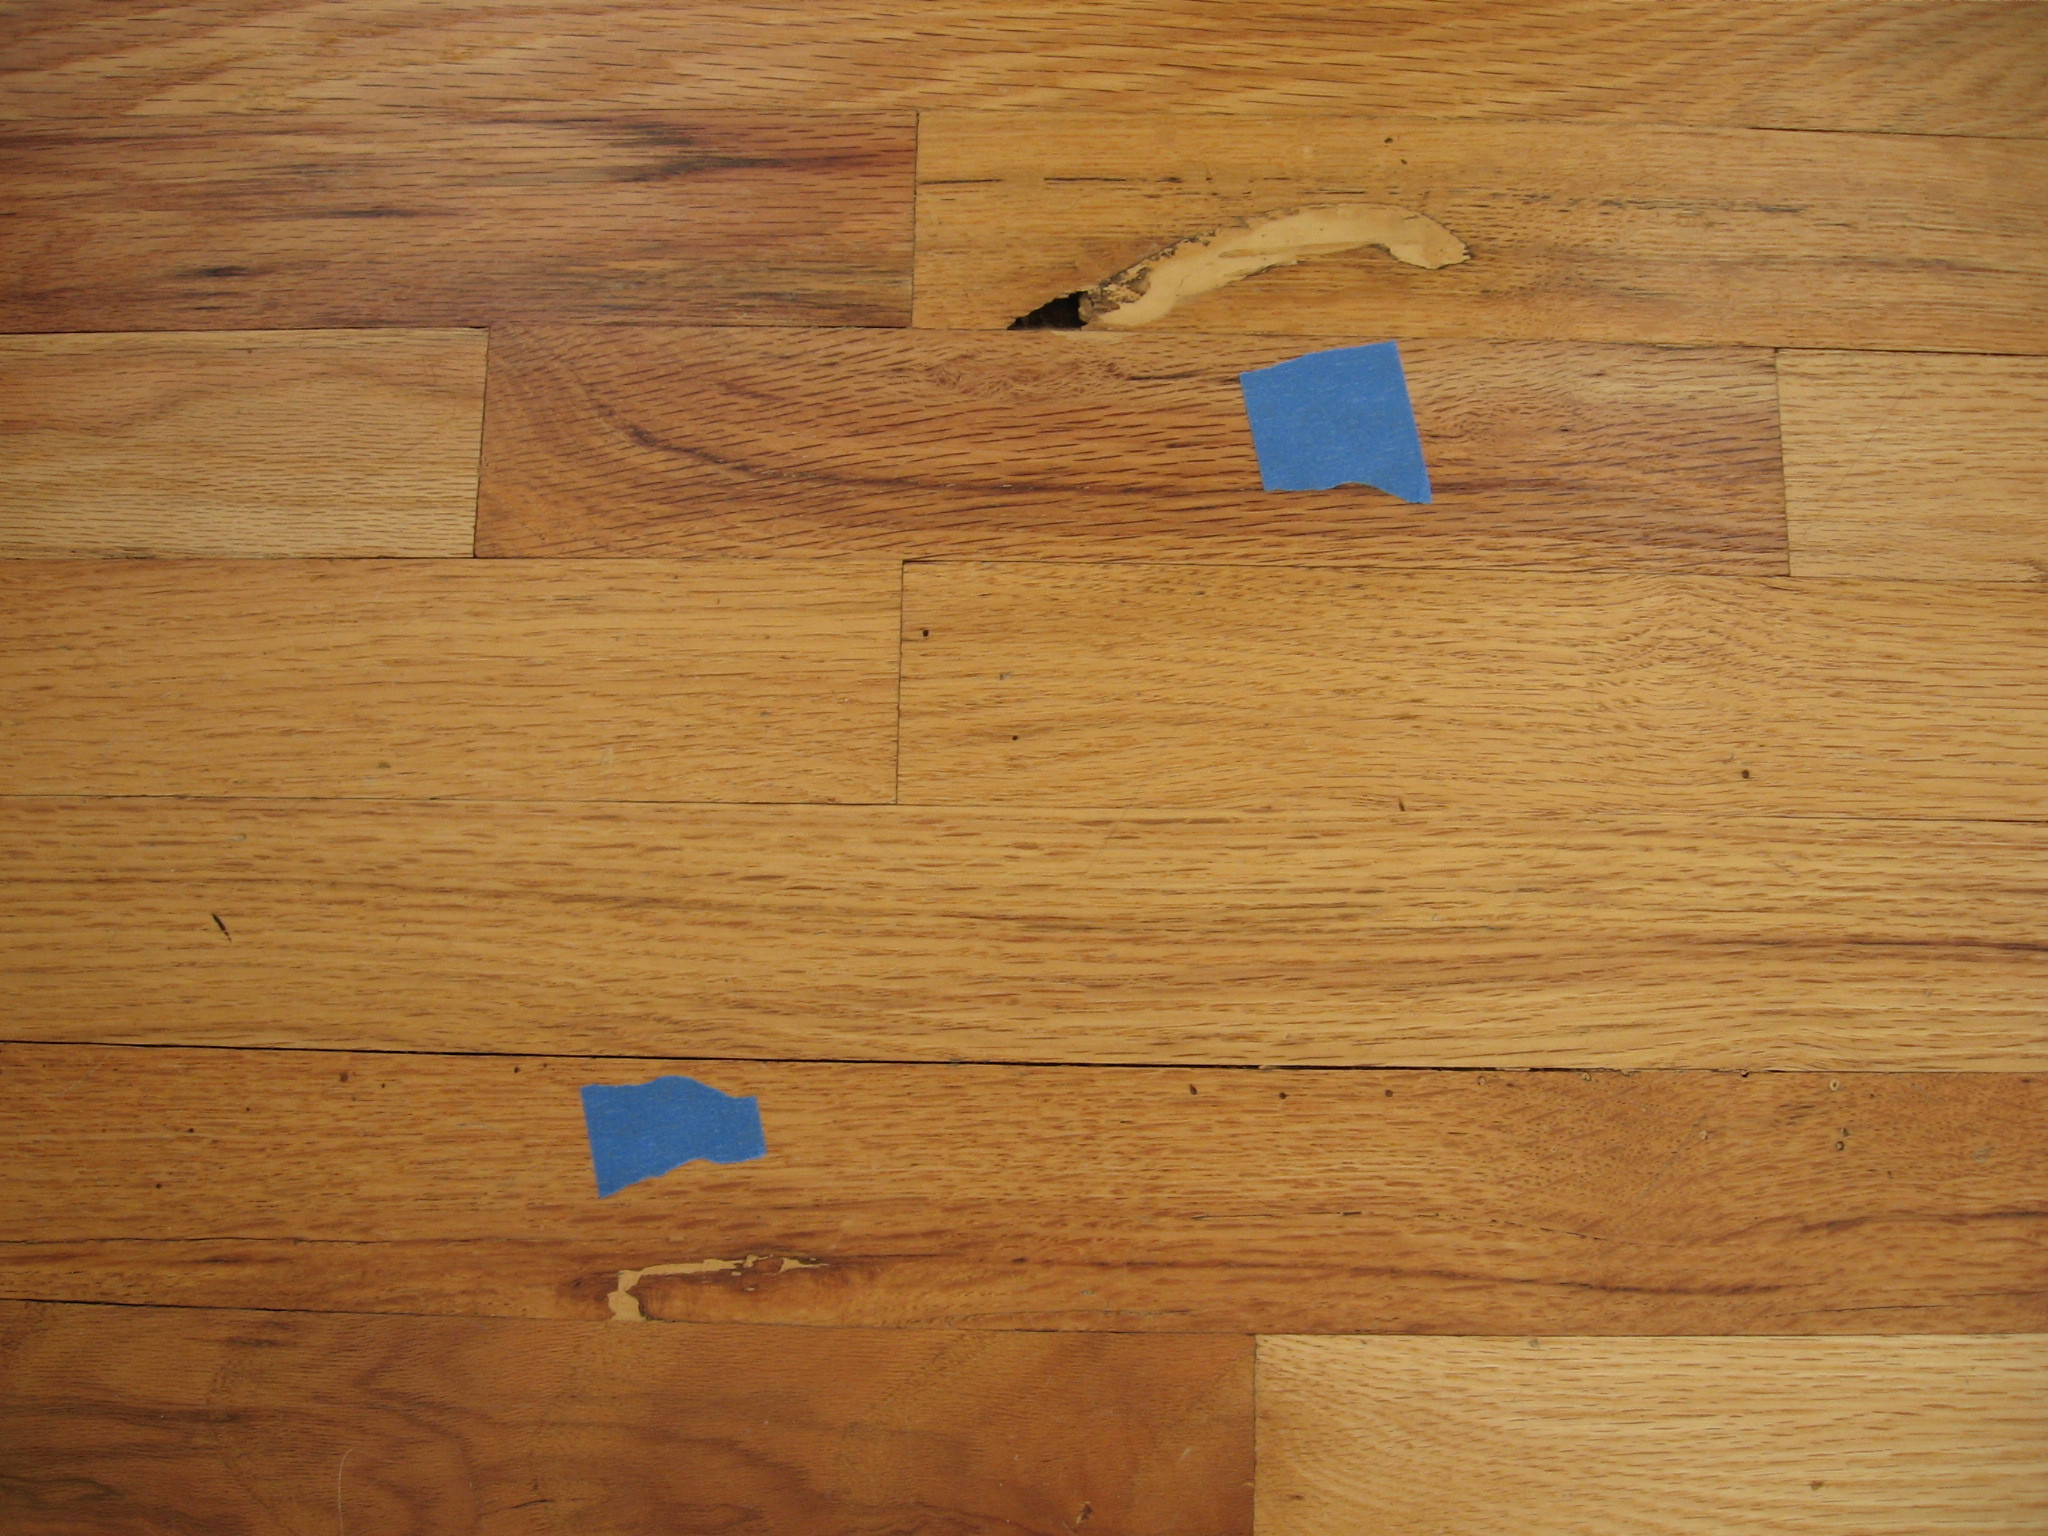 13 Stunning Dark Vs Light Colored Hardwood Floors 2021 free download dark vs light colored hardwood floors of wood floor techniques 101 for filler bad